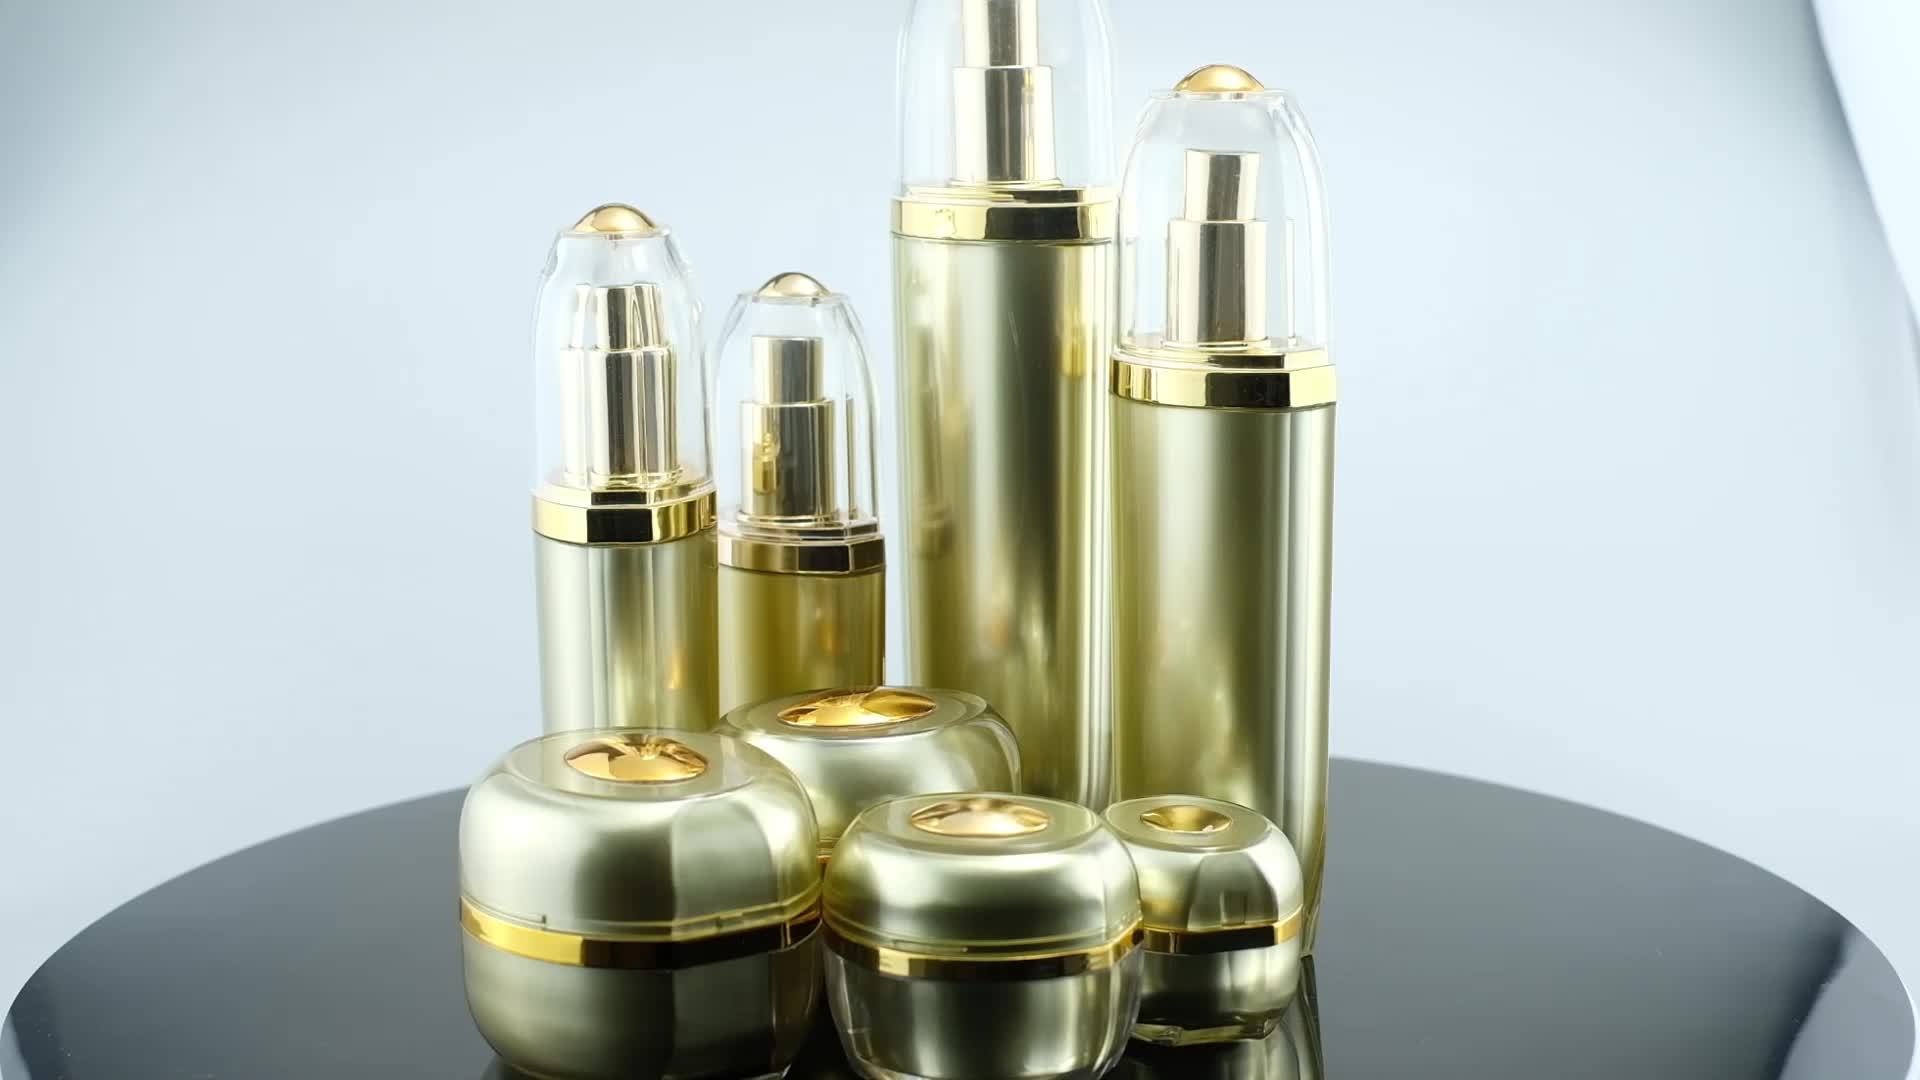 (Jar-5/10/15/20/30/50g)(Bottle-20/30/50/80/100ml)Hot Sale  Acrylic Cosmetic Cream Jar and Spray Pump Bottle Family Set